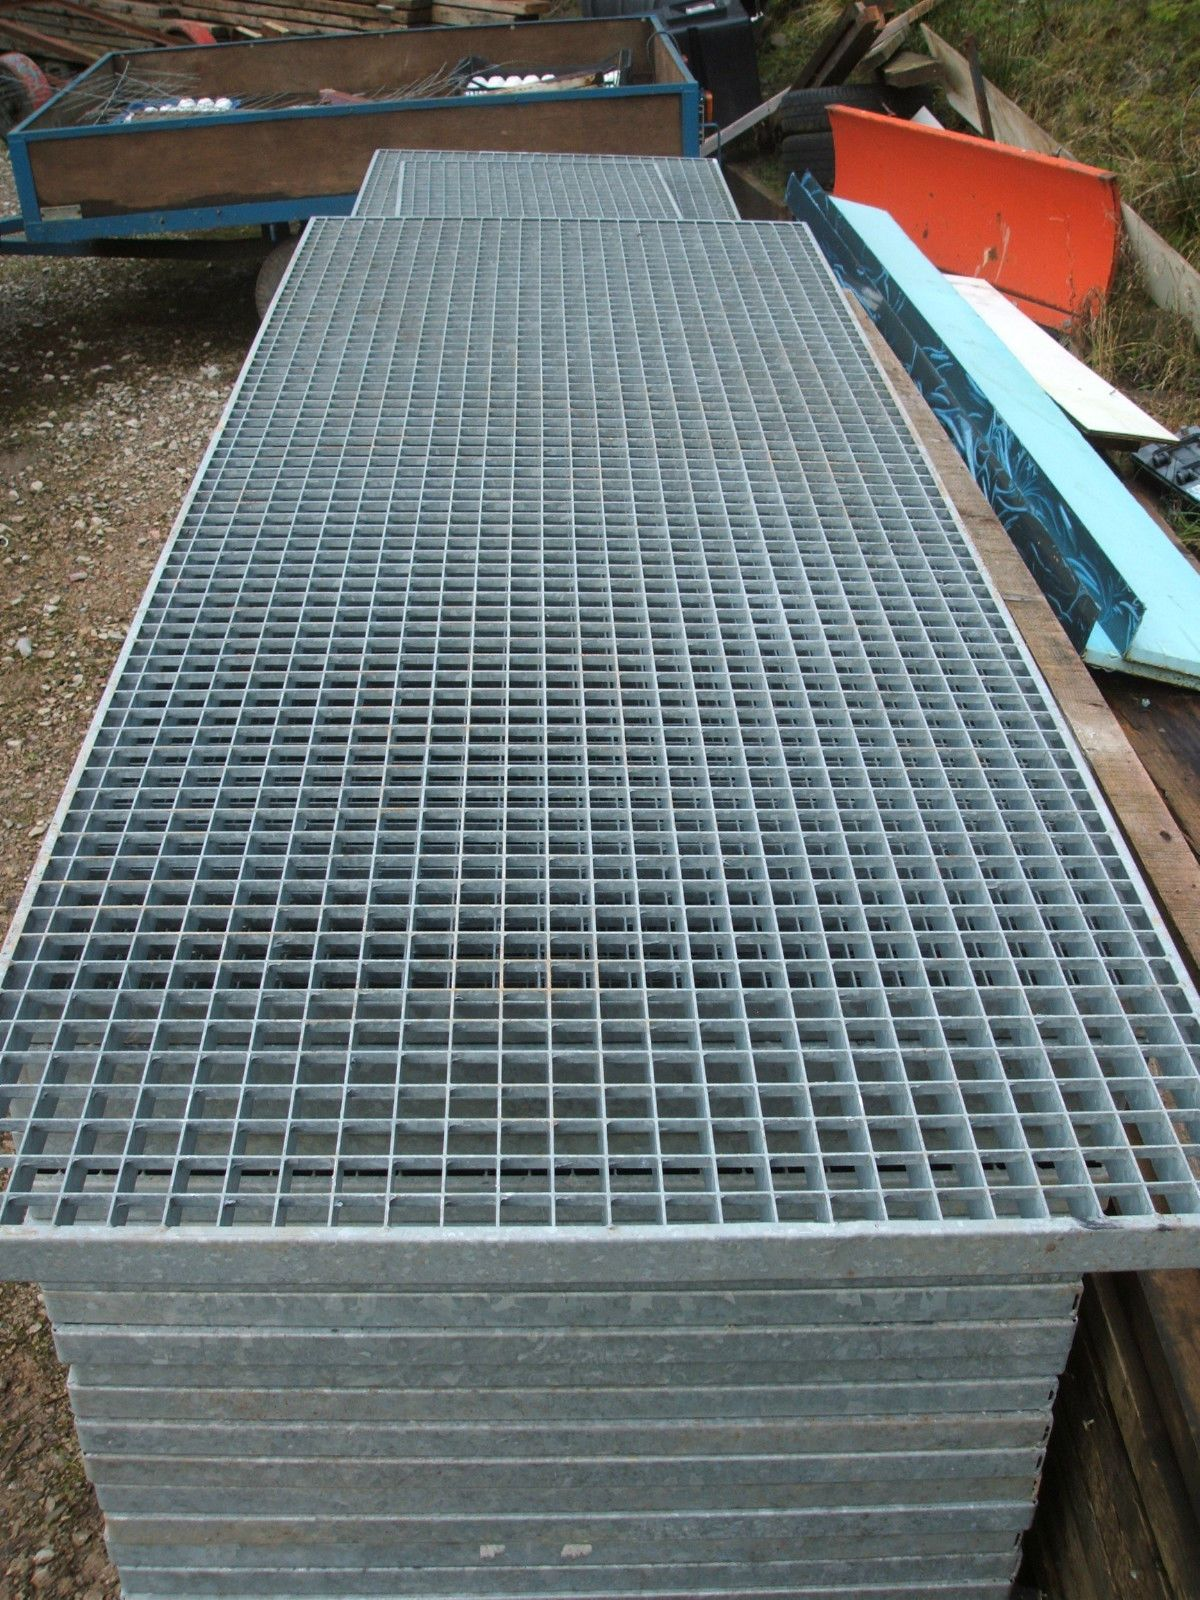 Best Floor Forge Walkway Steel Grating 69 X 33 1 2 Mezzanine 400 x 300